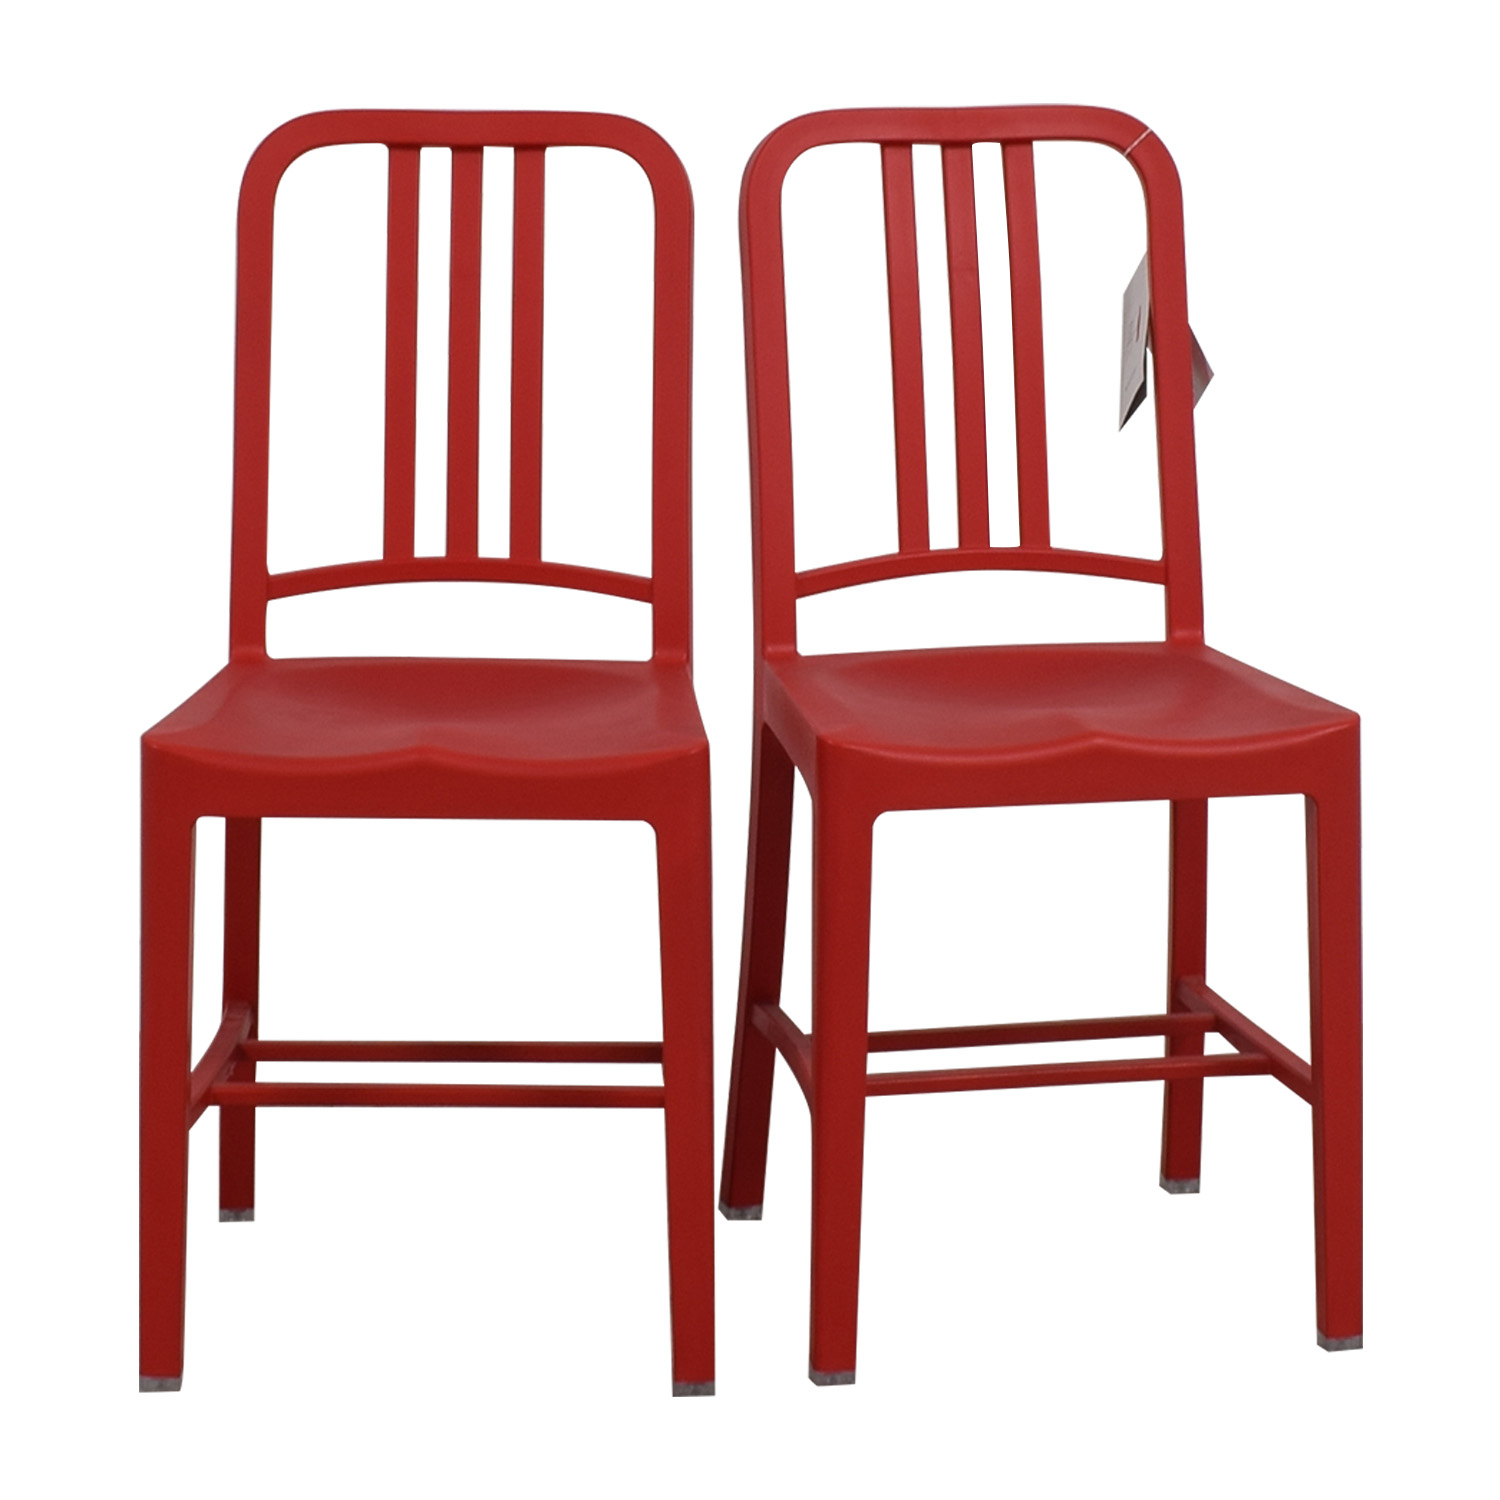 Emeco Emeco 111 Navy Recycled Red Chairs coupon